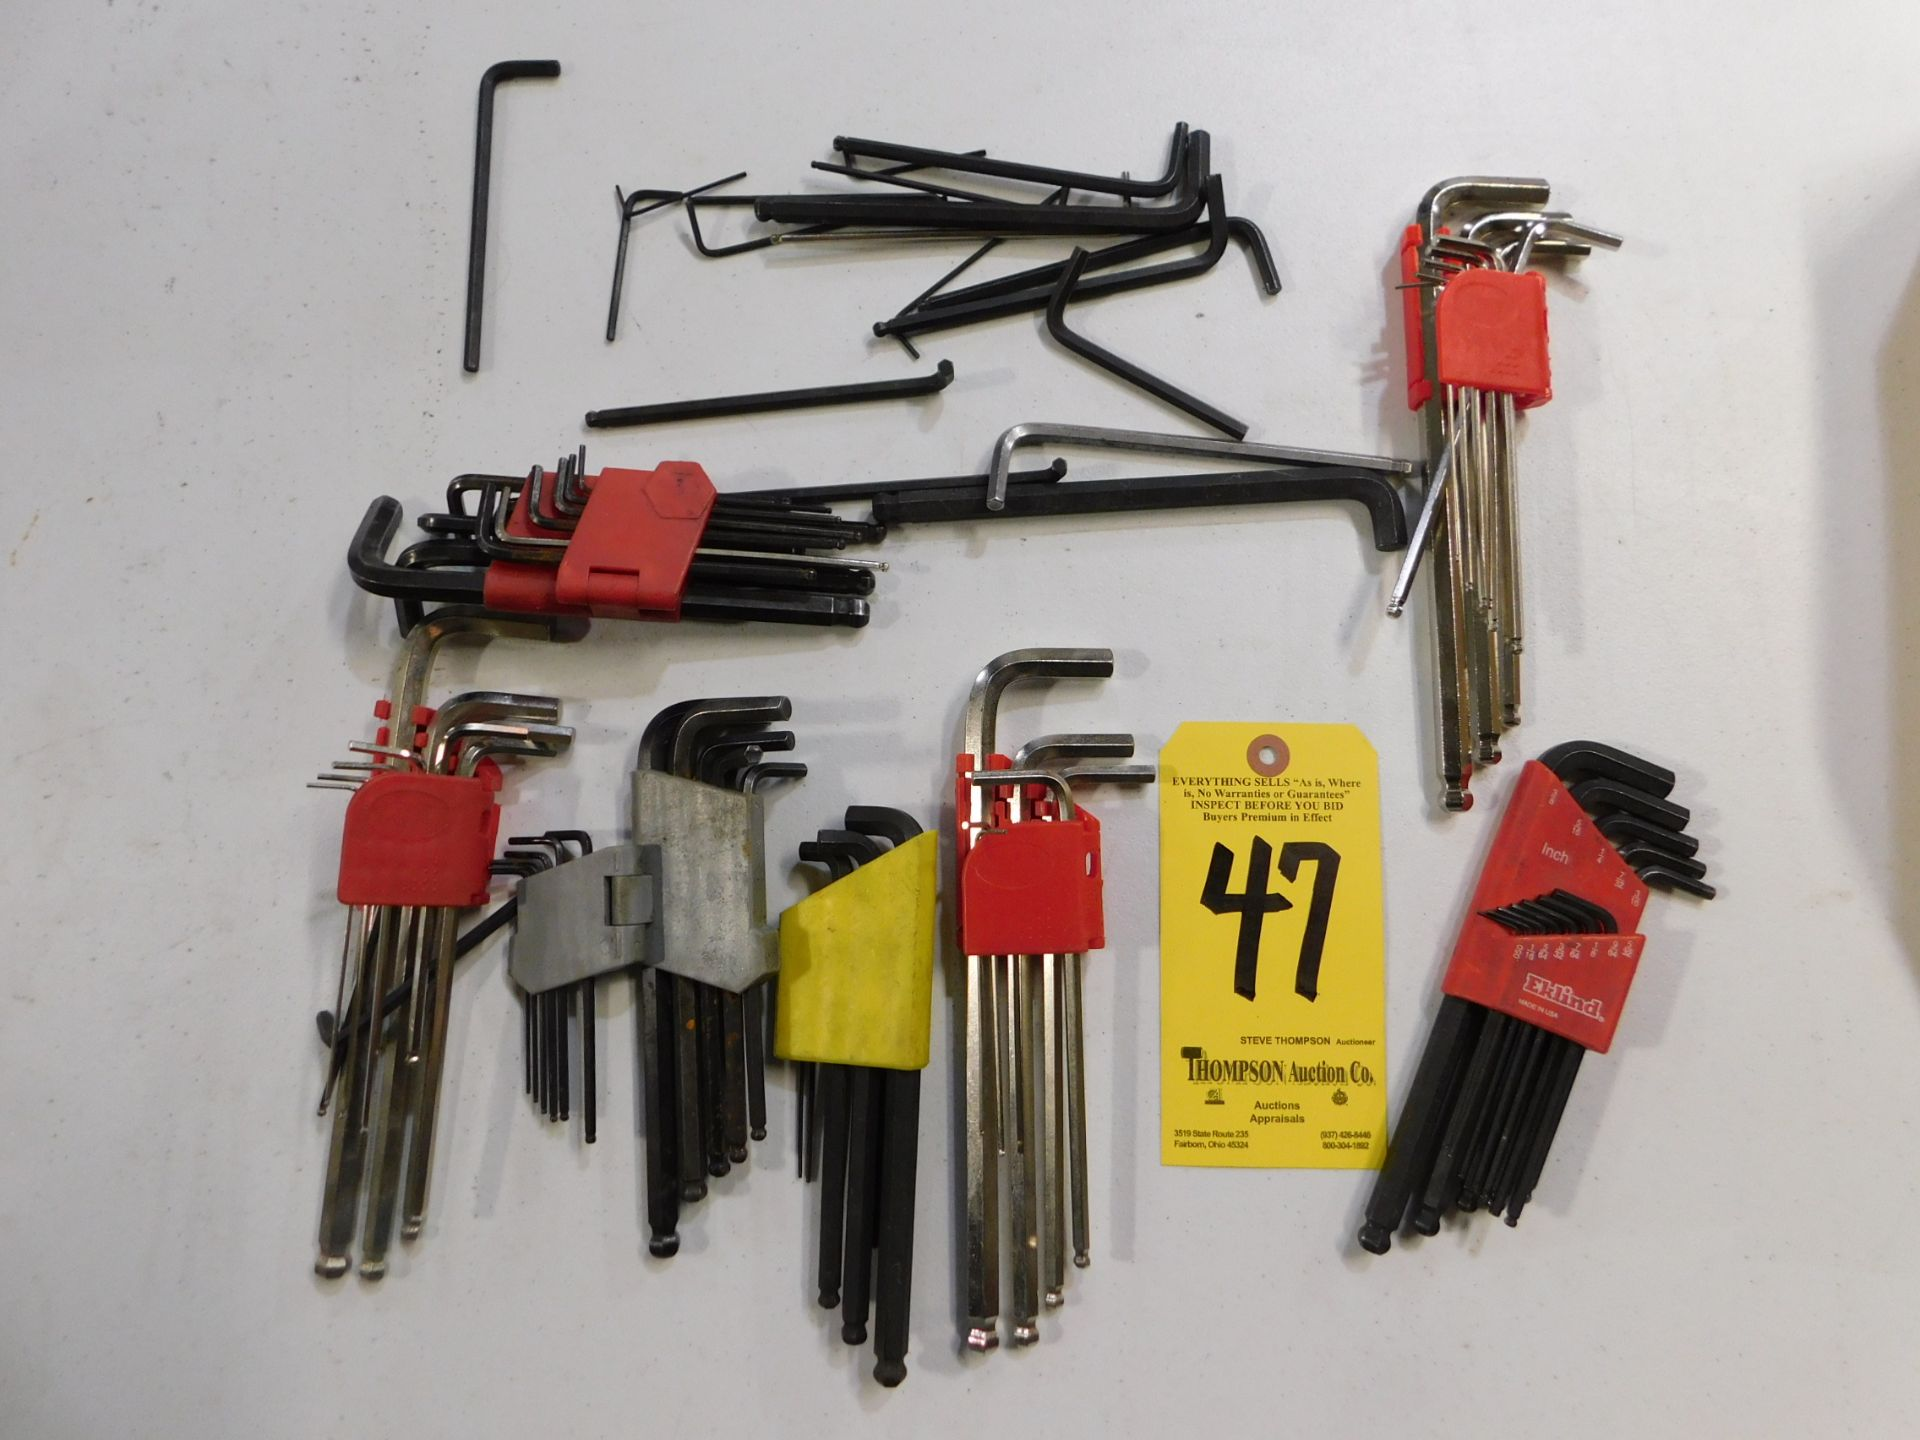 Lot 47 - Hex Wrenches, Lot Location 3204 Olympia Dr. A, Lafayette, IN 47909